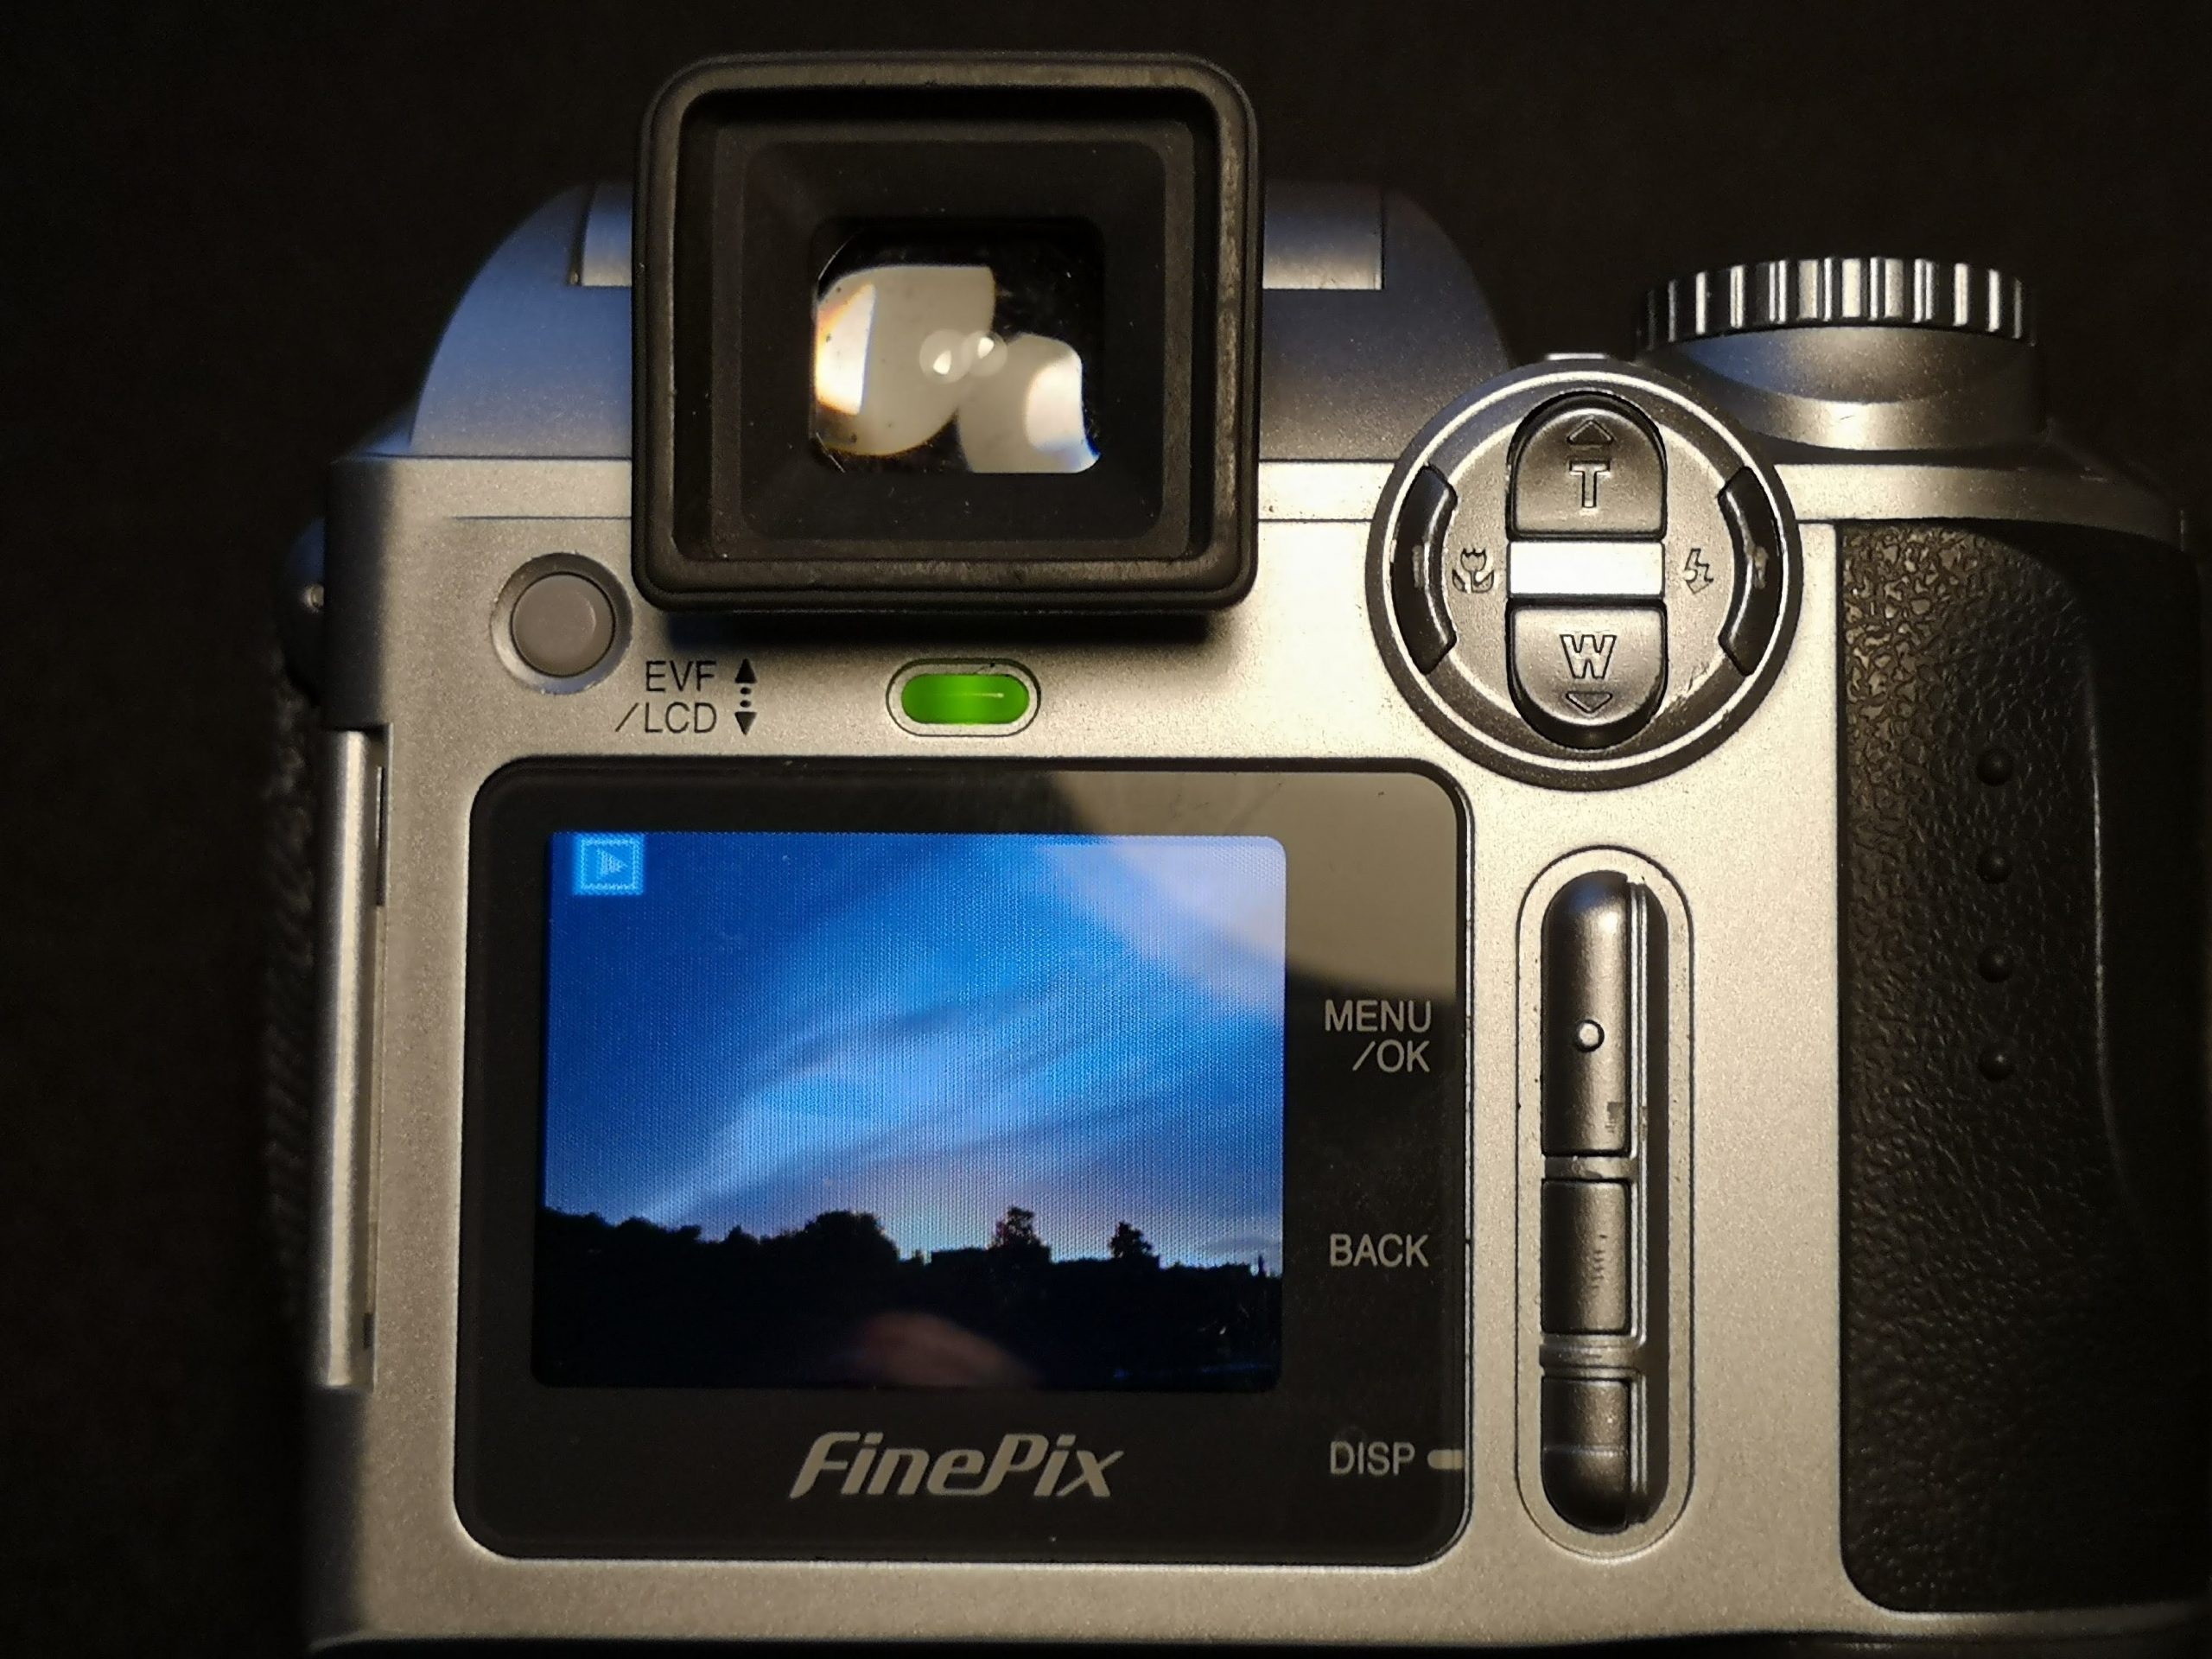 Finepix S3000 rear with LCD on